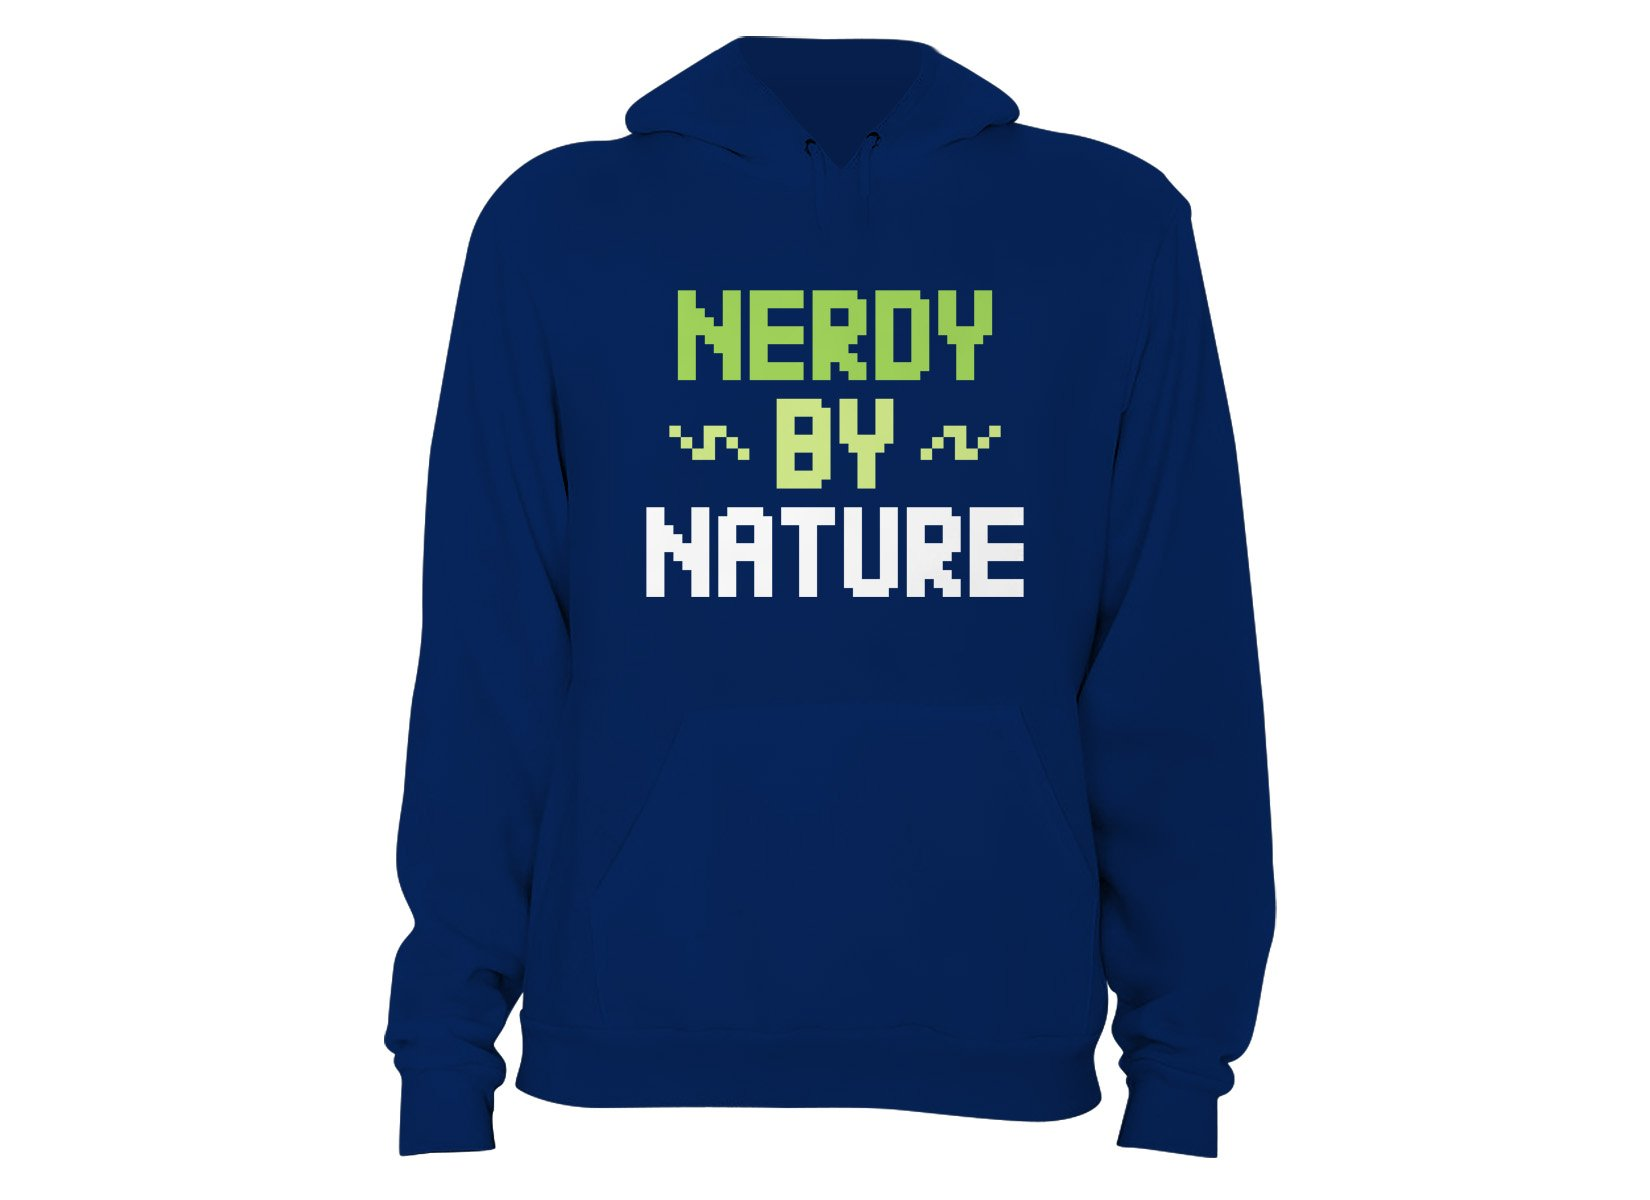 Nerdy By Nature on Hoodie